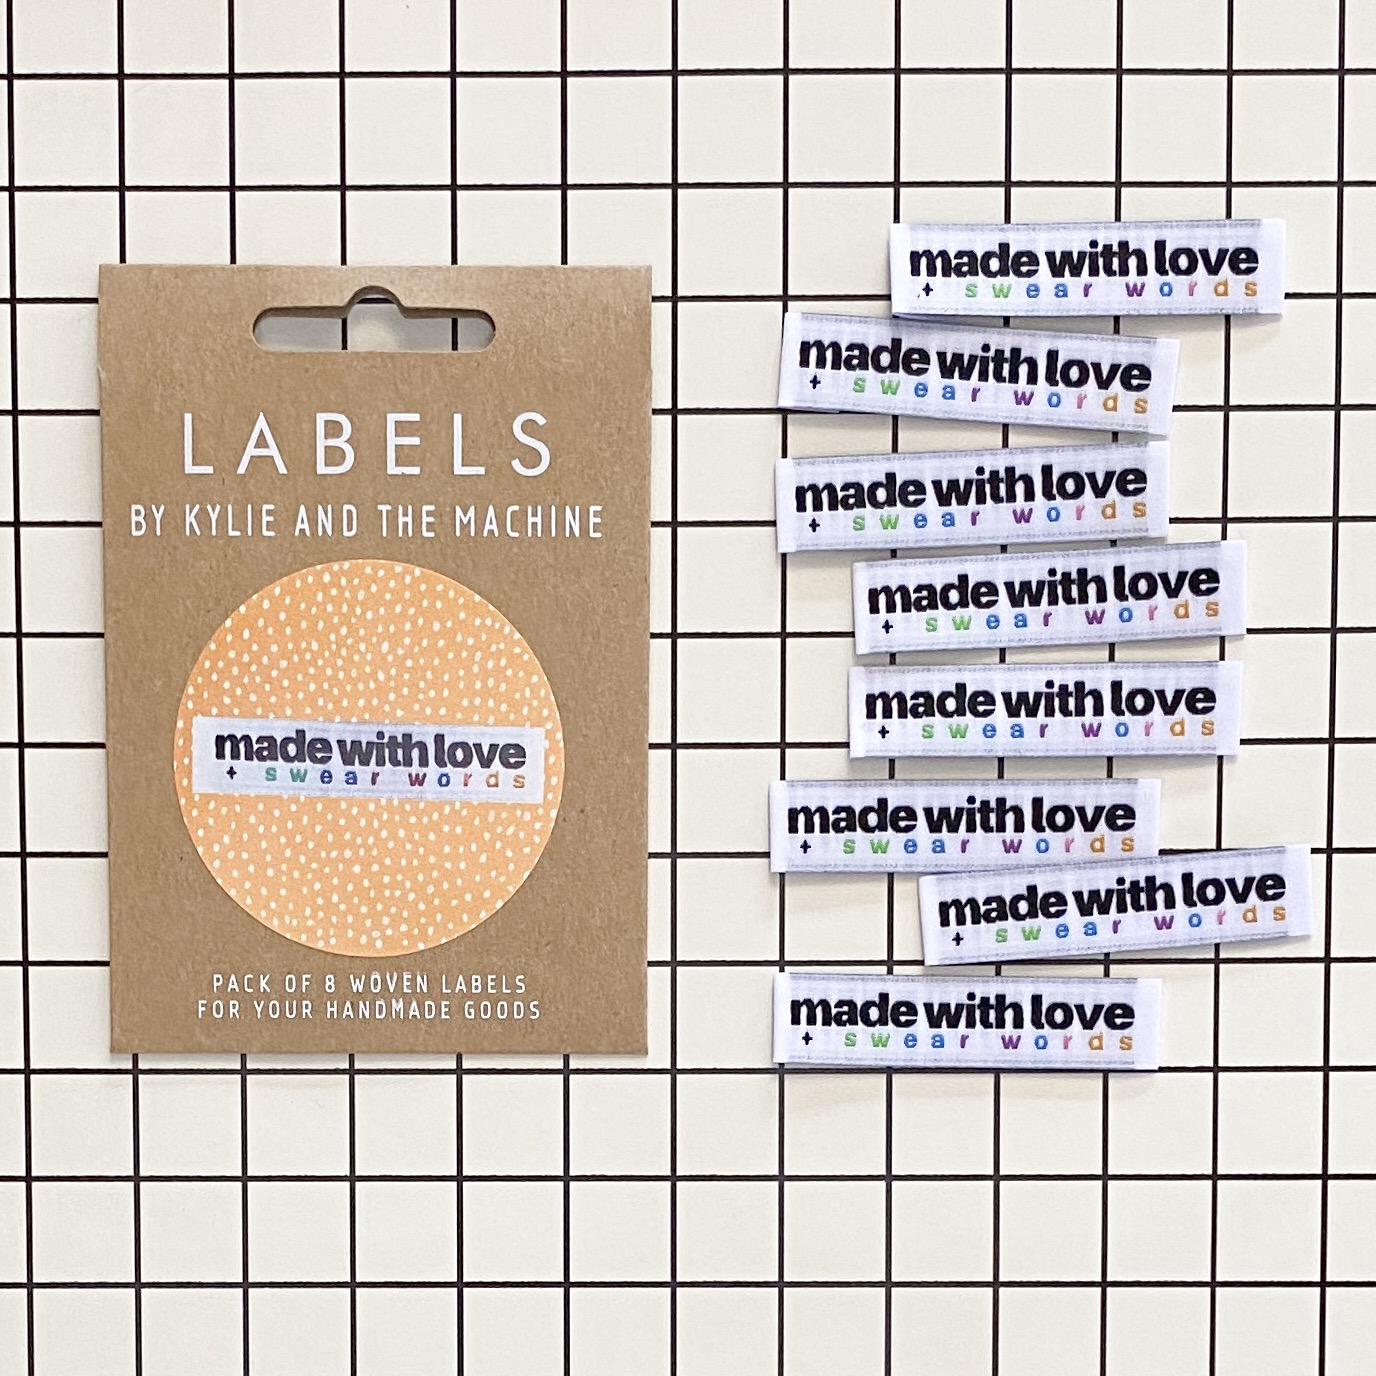 Label - Made with love + swearwords